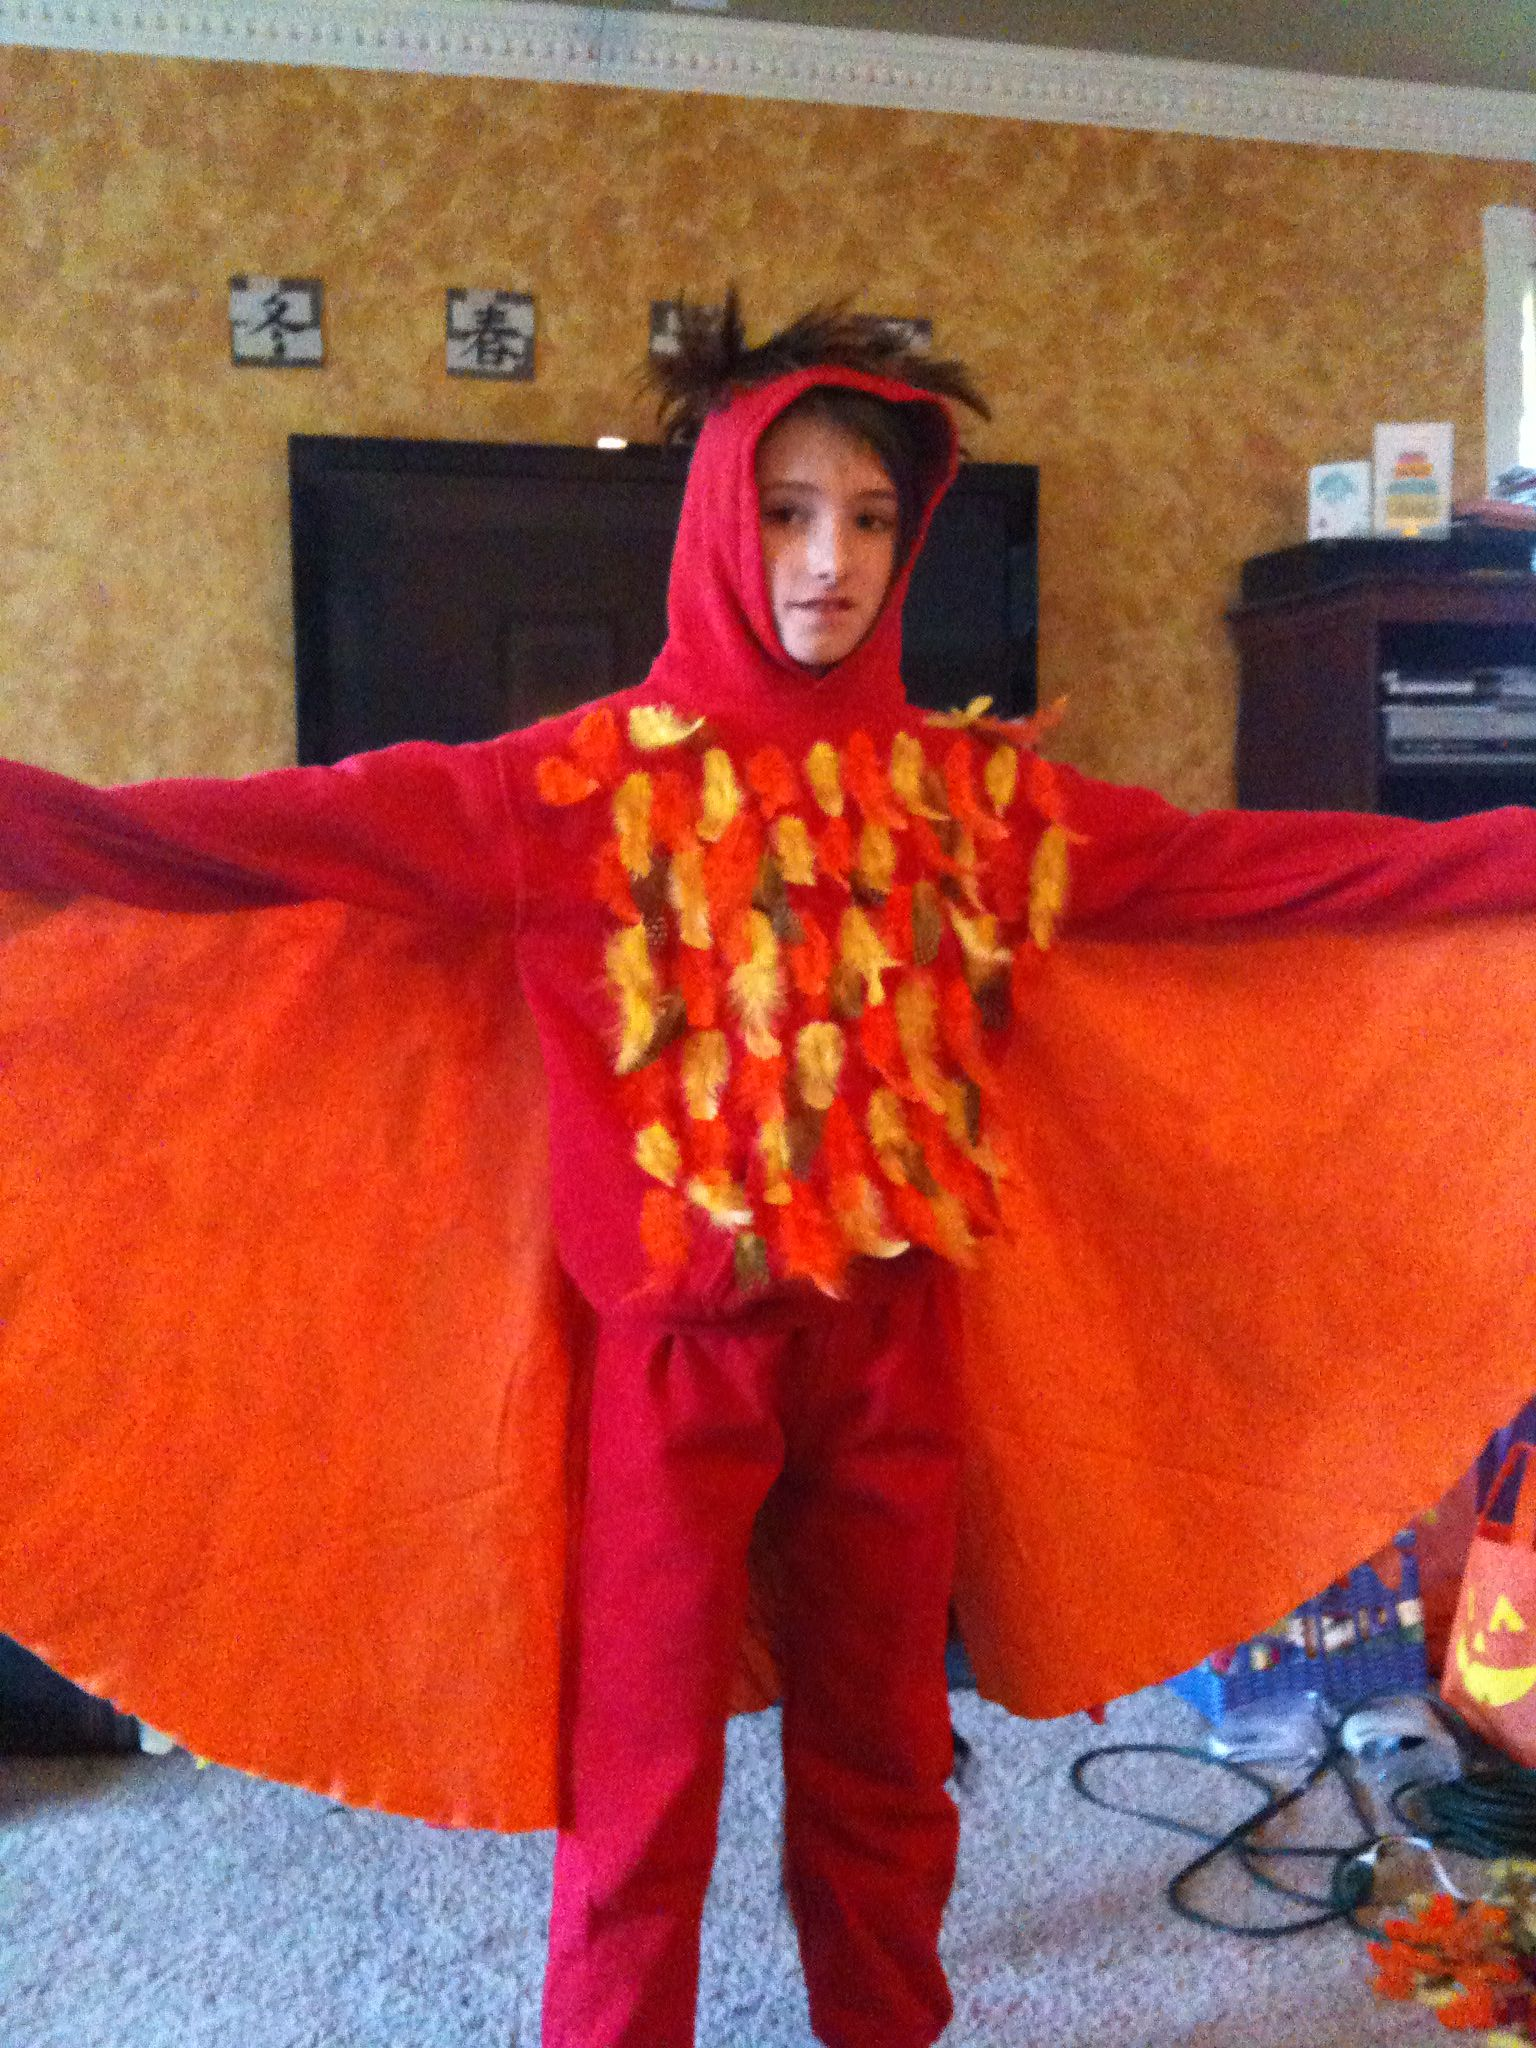 Phoenix costume - Fawkes from Harry Potter.  Front view.  Red sweats, feathers and hot glue, large piece of felt sewn to the sleeves, and a dowel from elbow to wingtip on each side.  Probably the best costume I've made.